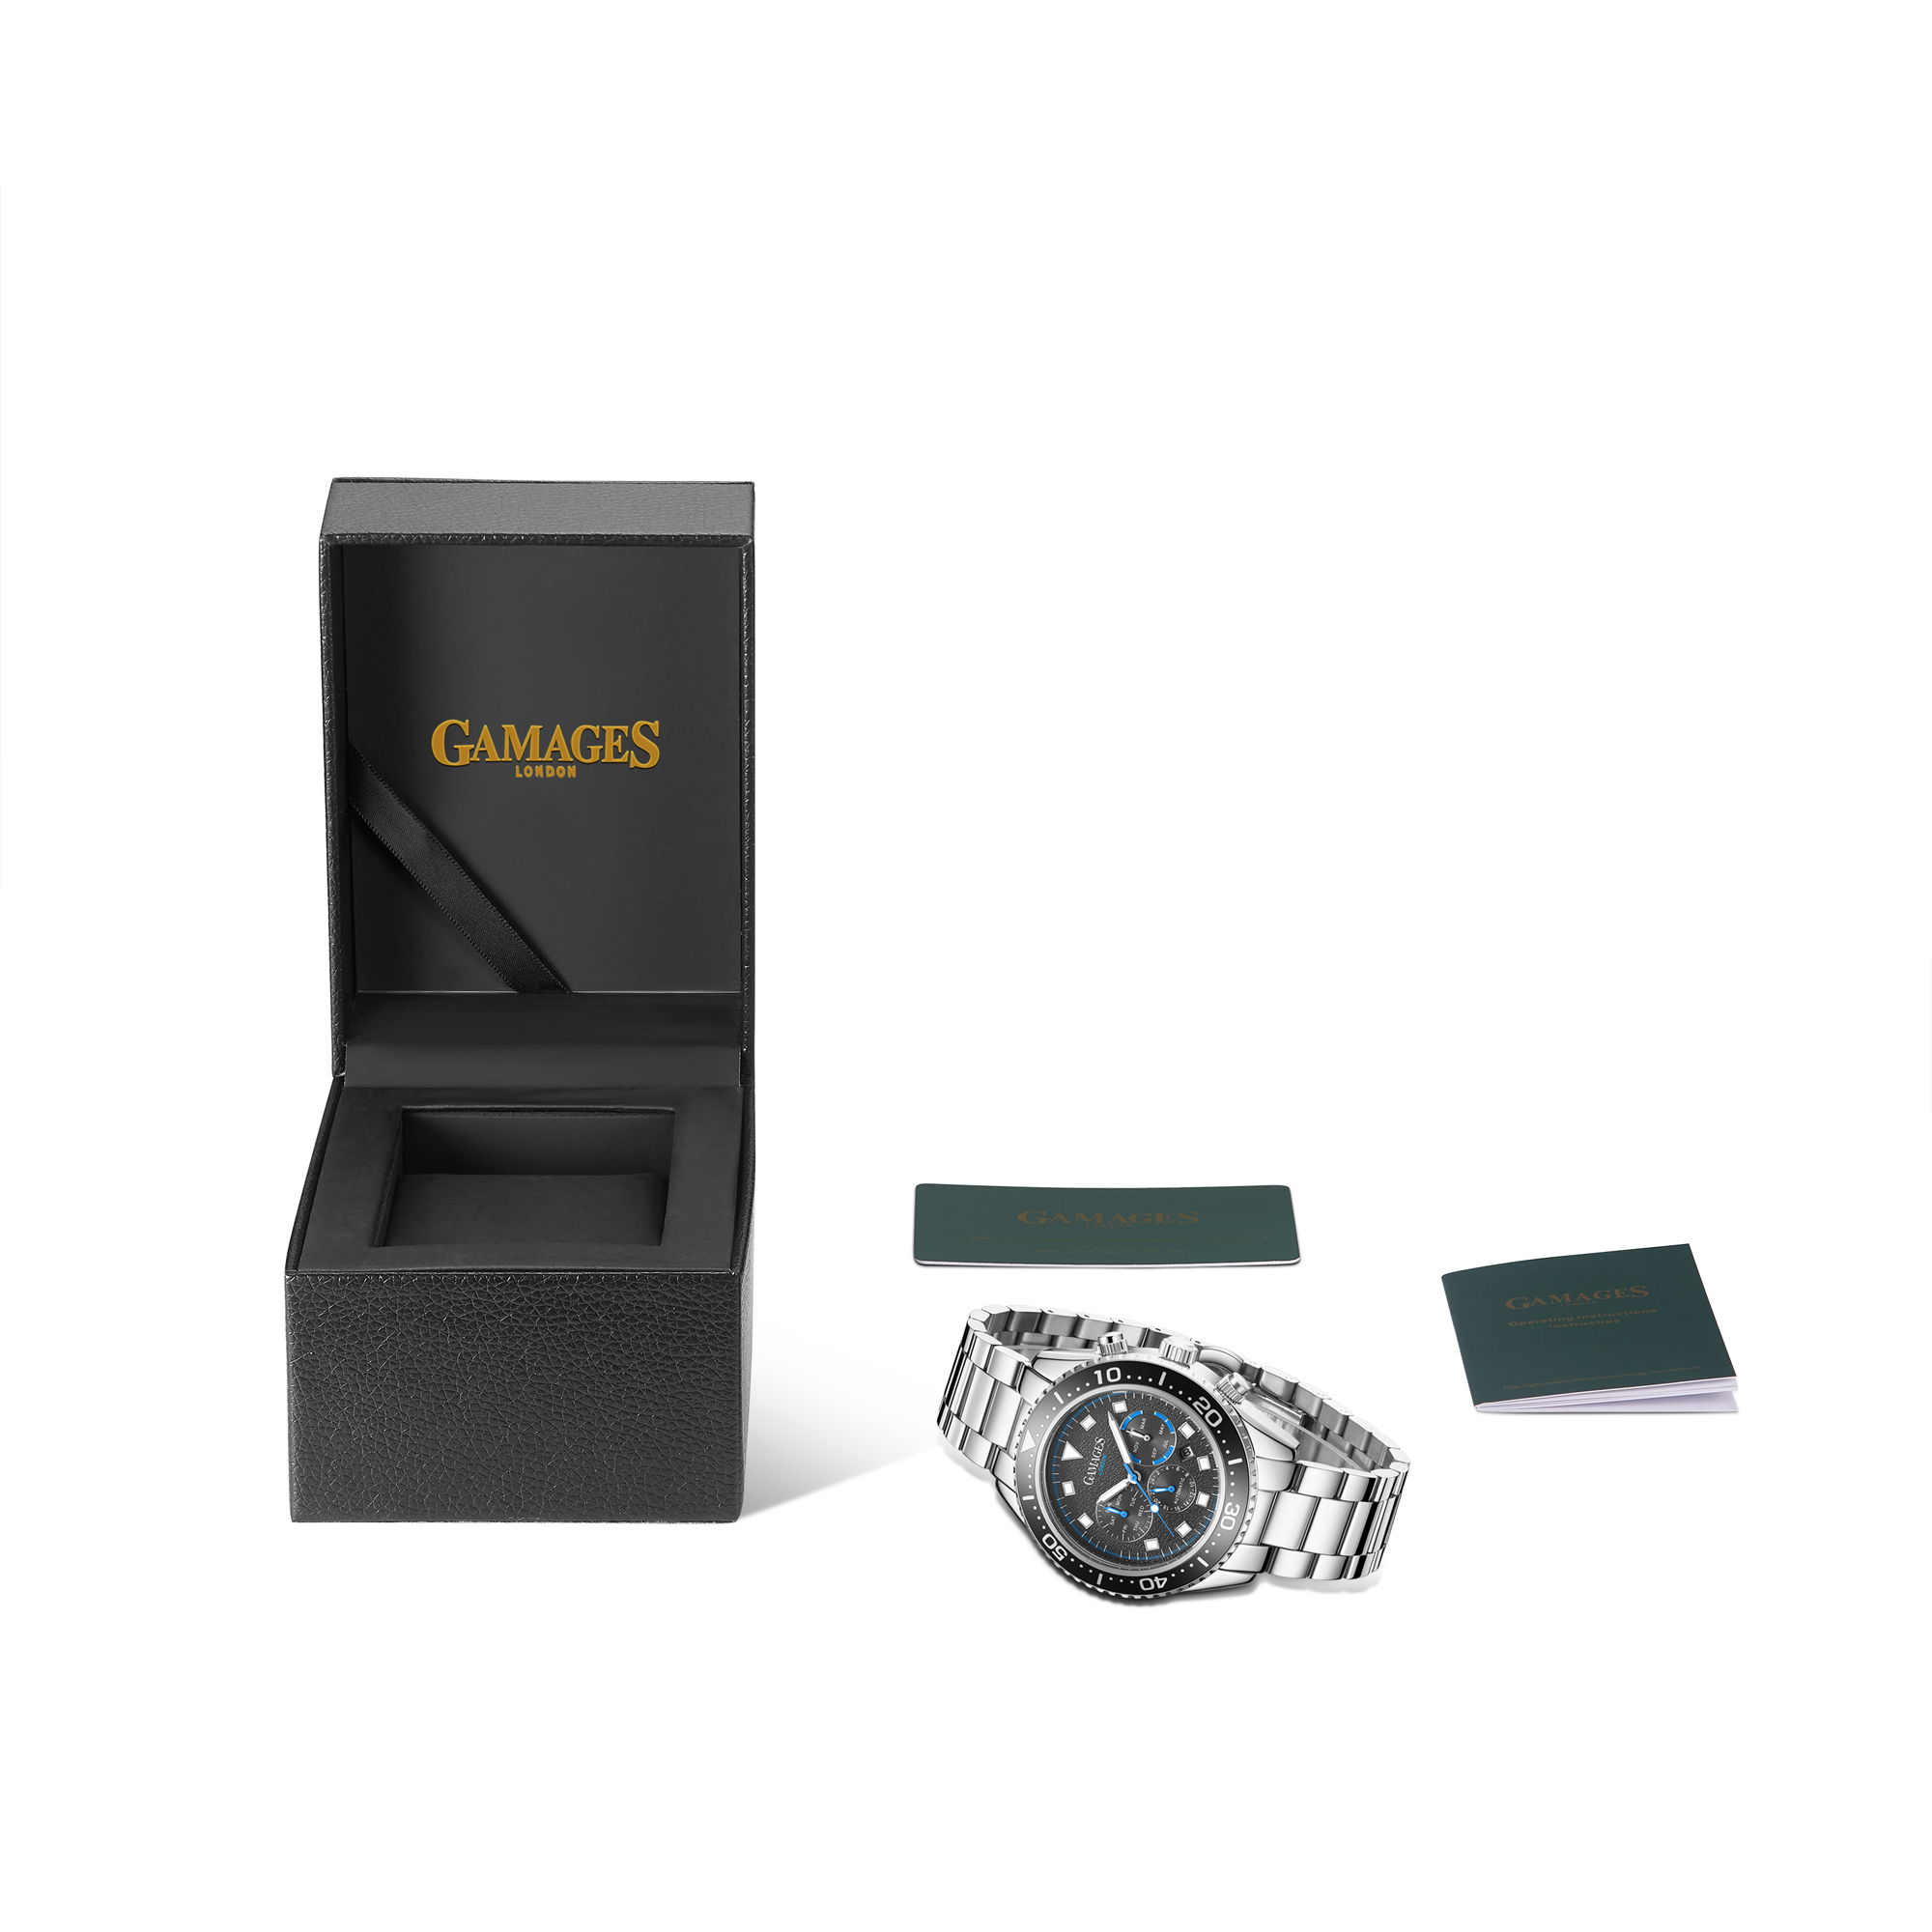 Limited Edition Hand Assembled Gamages Allure Automatic Steel – 5 Year Warranty & Free Delivery - Image 2 of 4